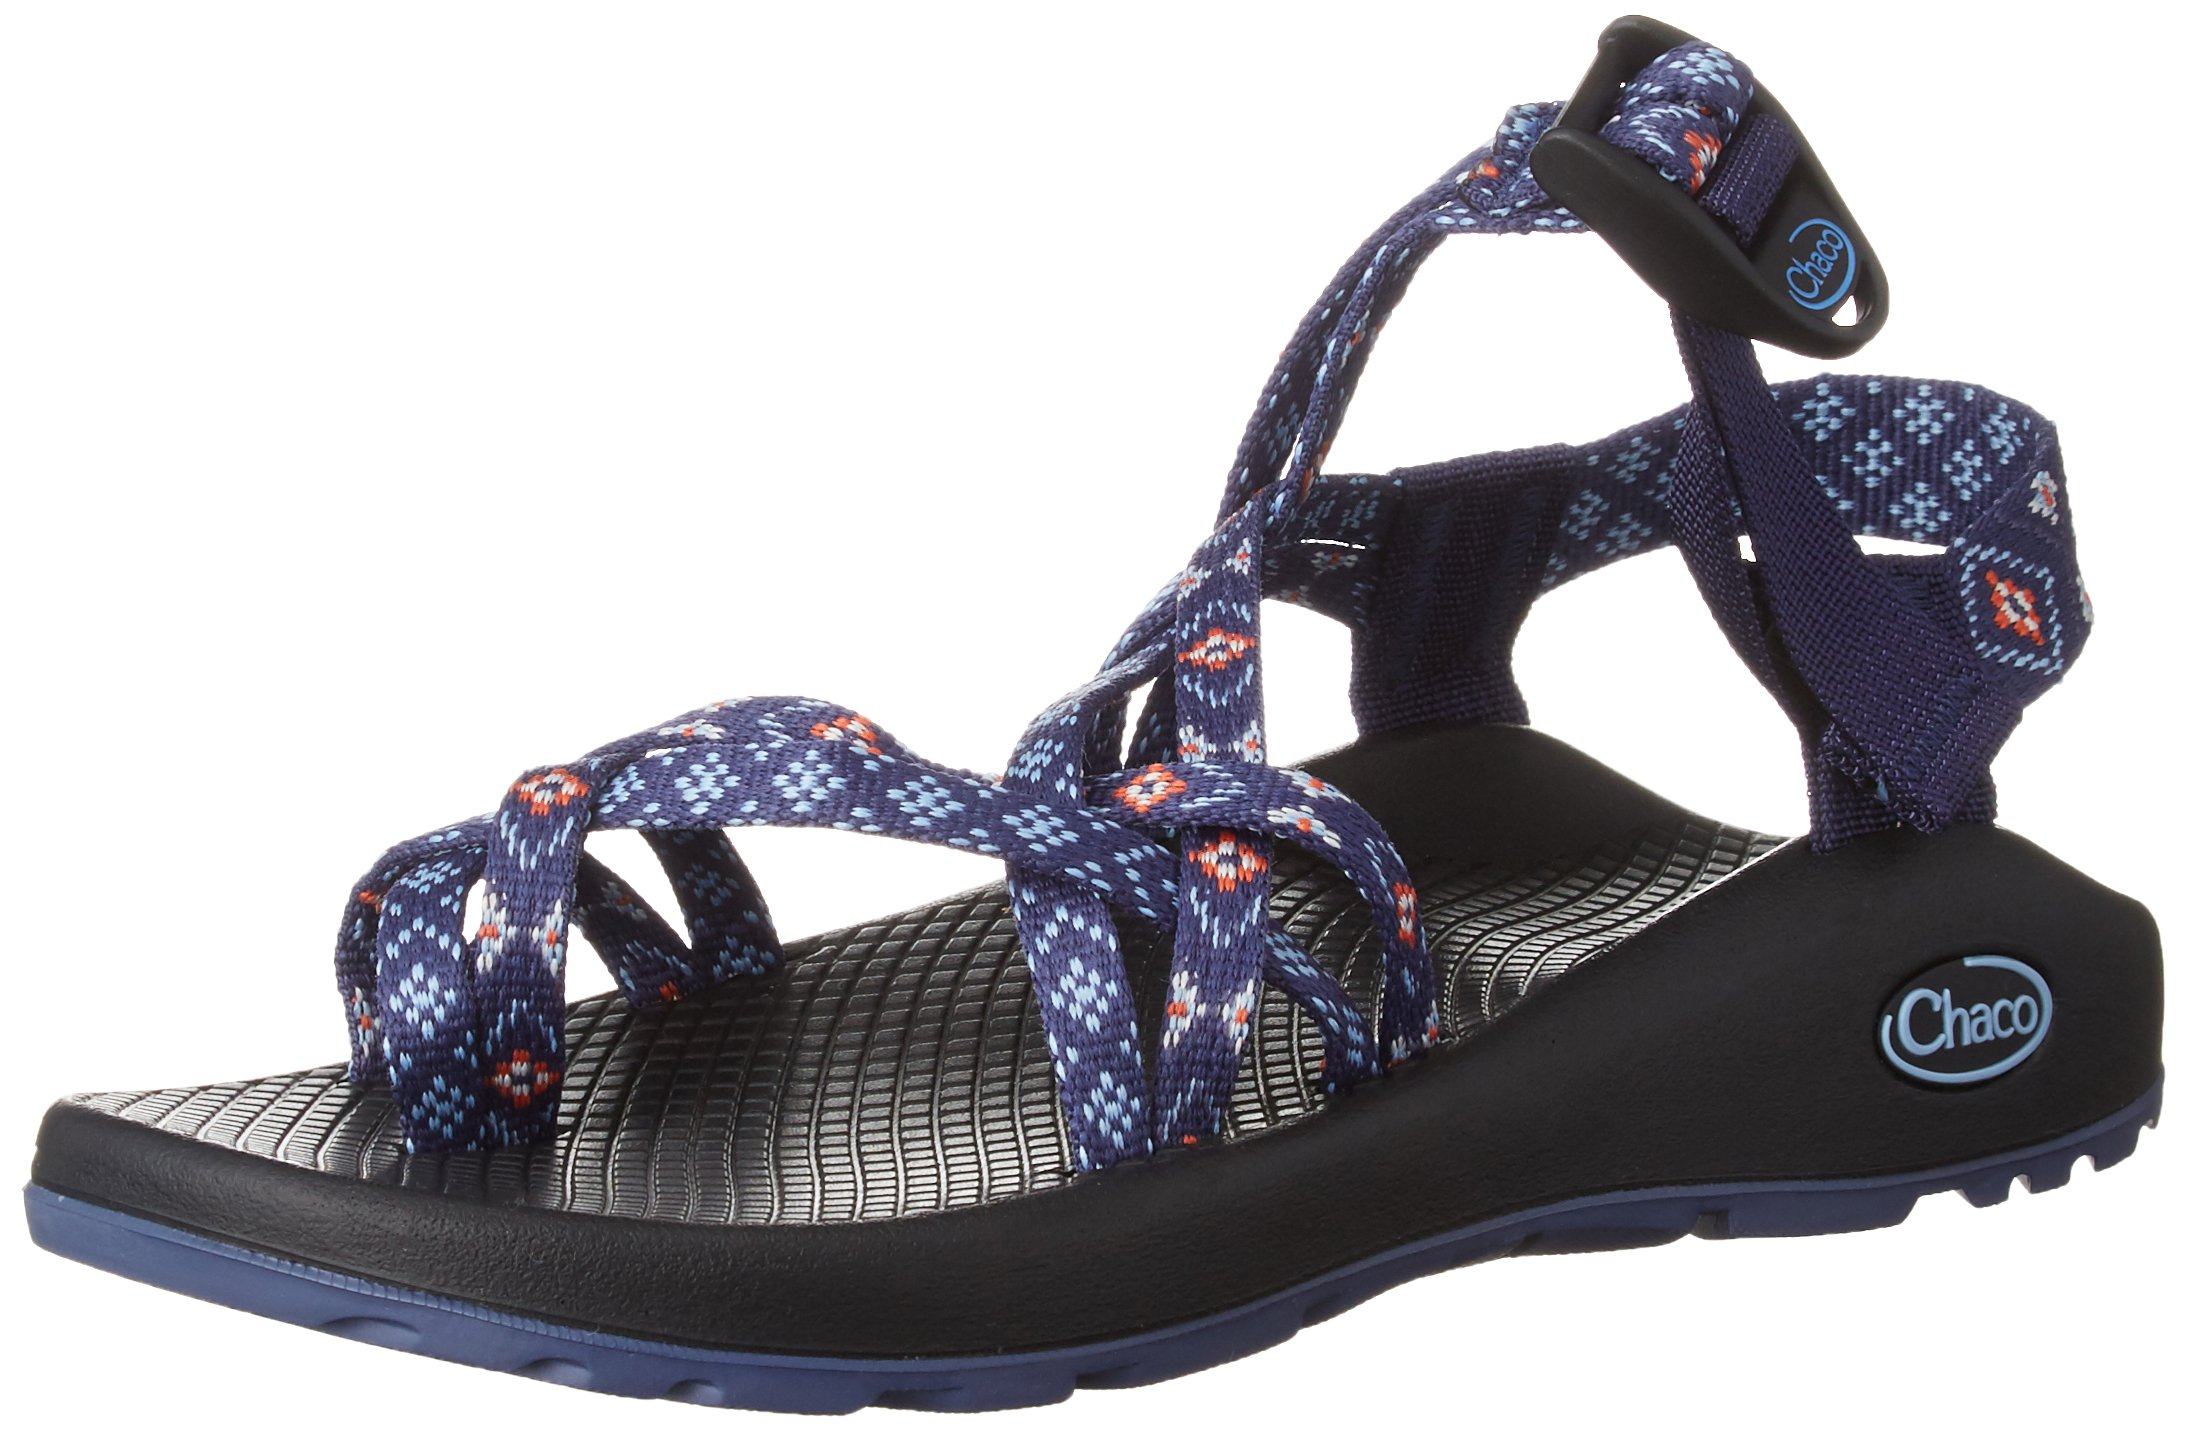 Chaco Women's ZX2 Classic Athletic Sandal, Wink Blue, 7 M US